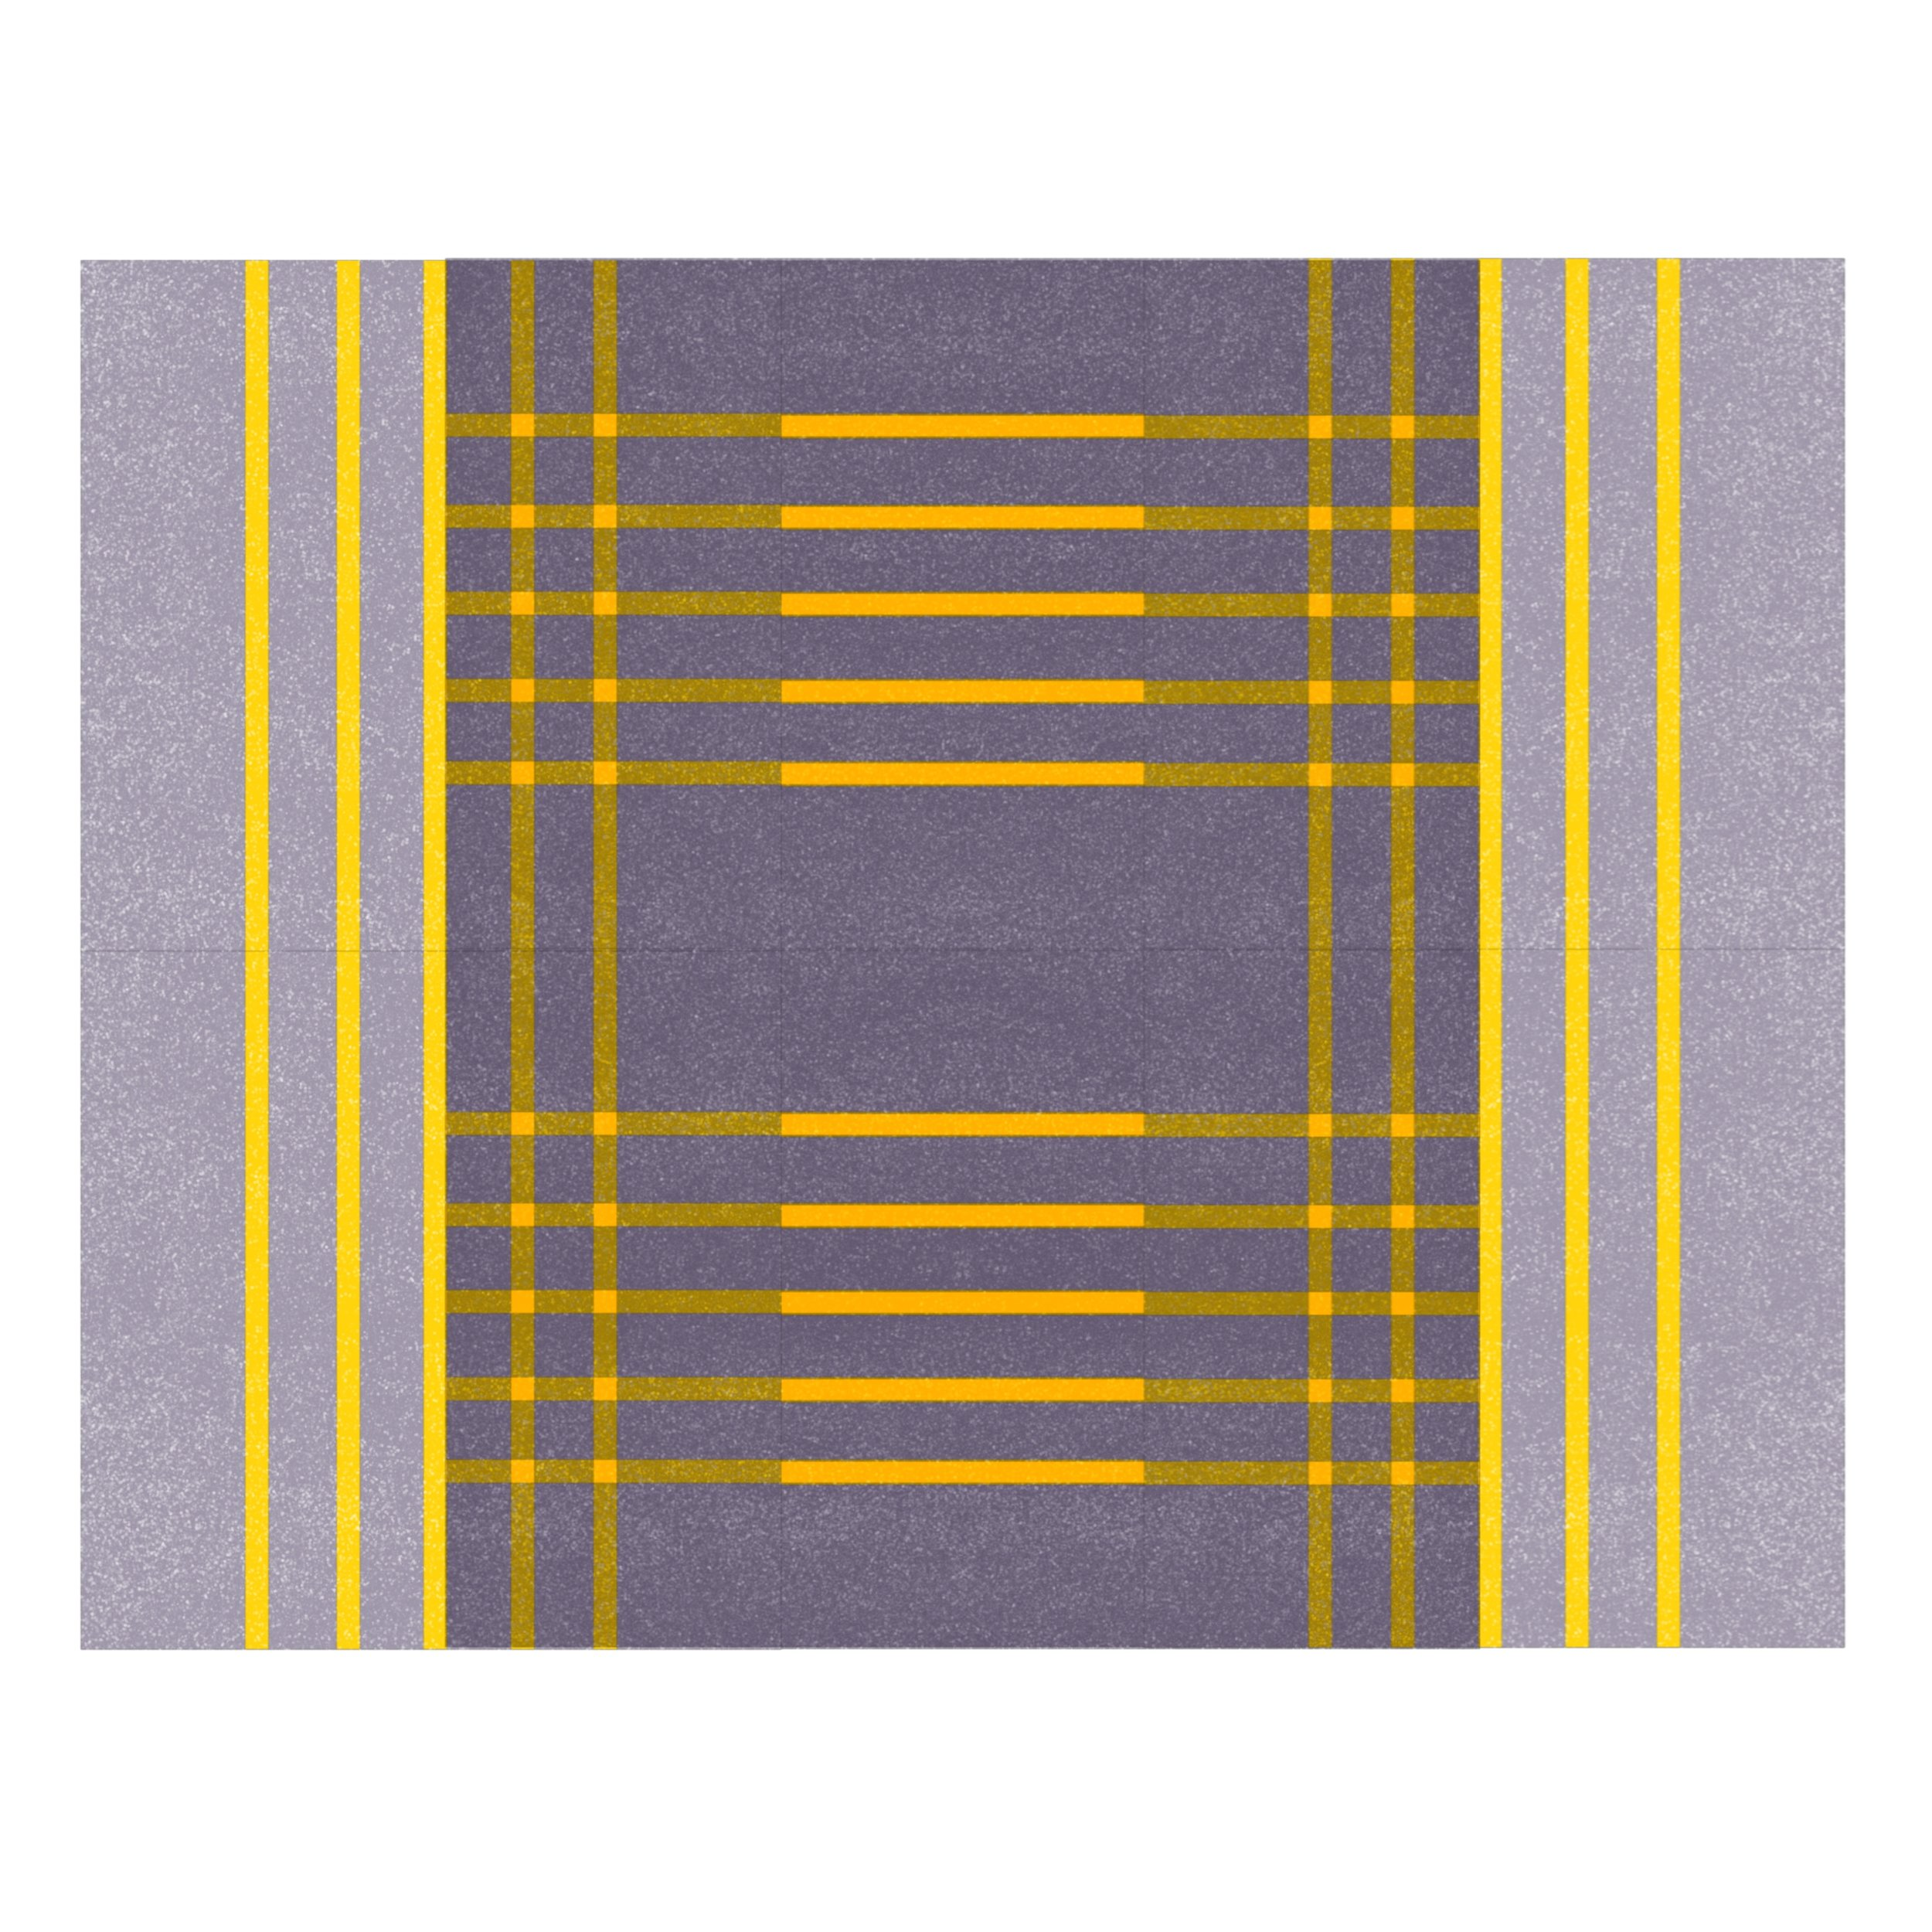 Grey With Yellow Lines (Variation 1)